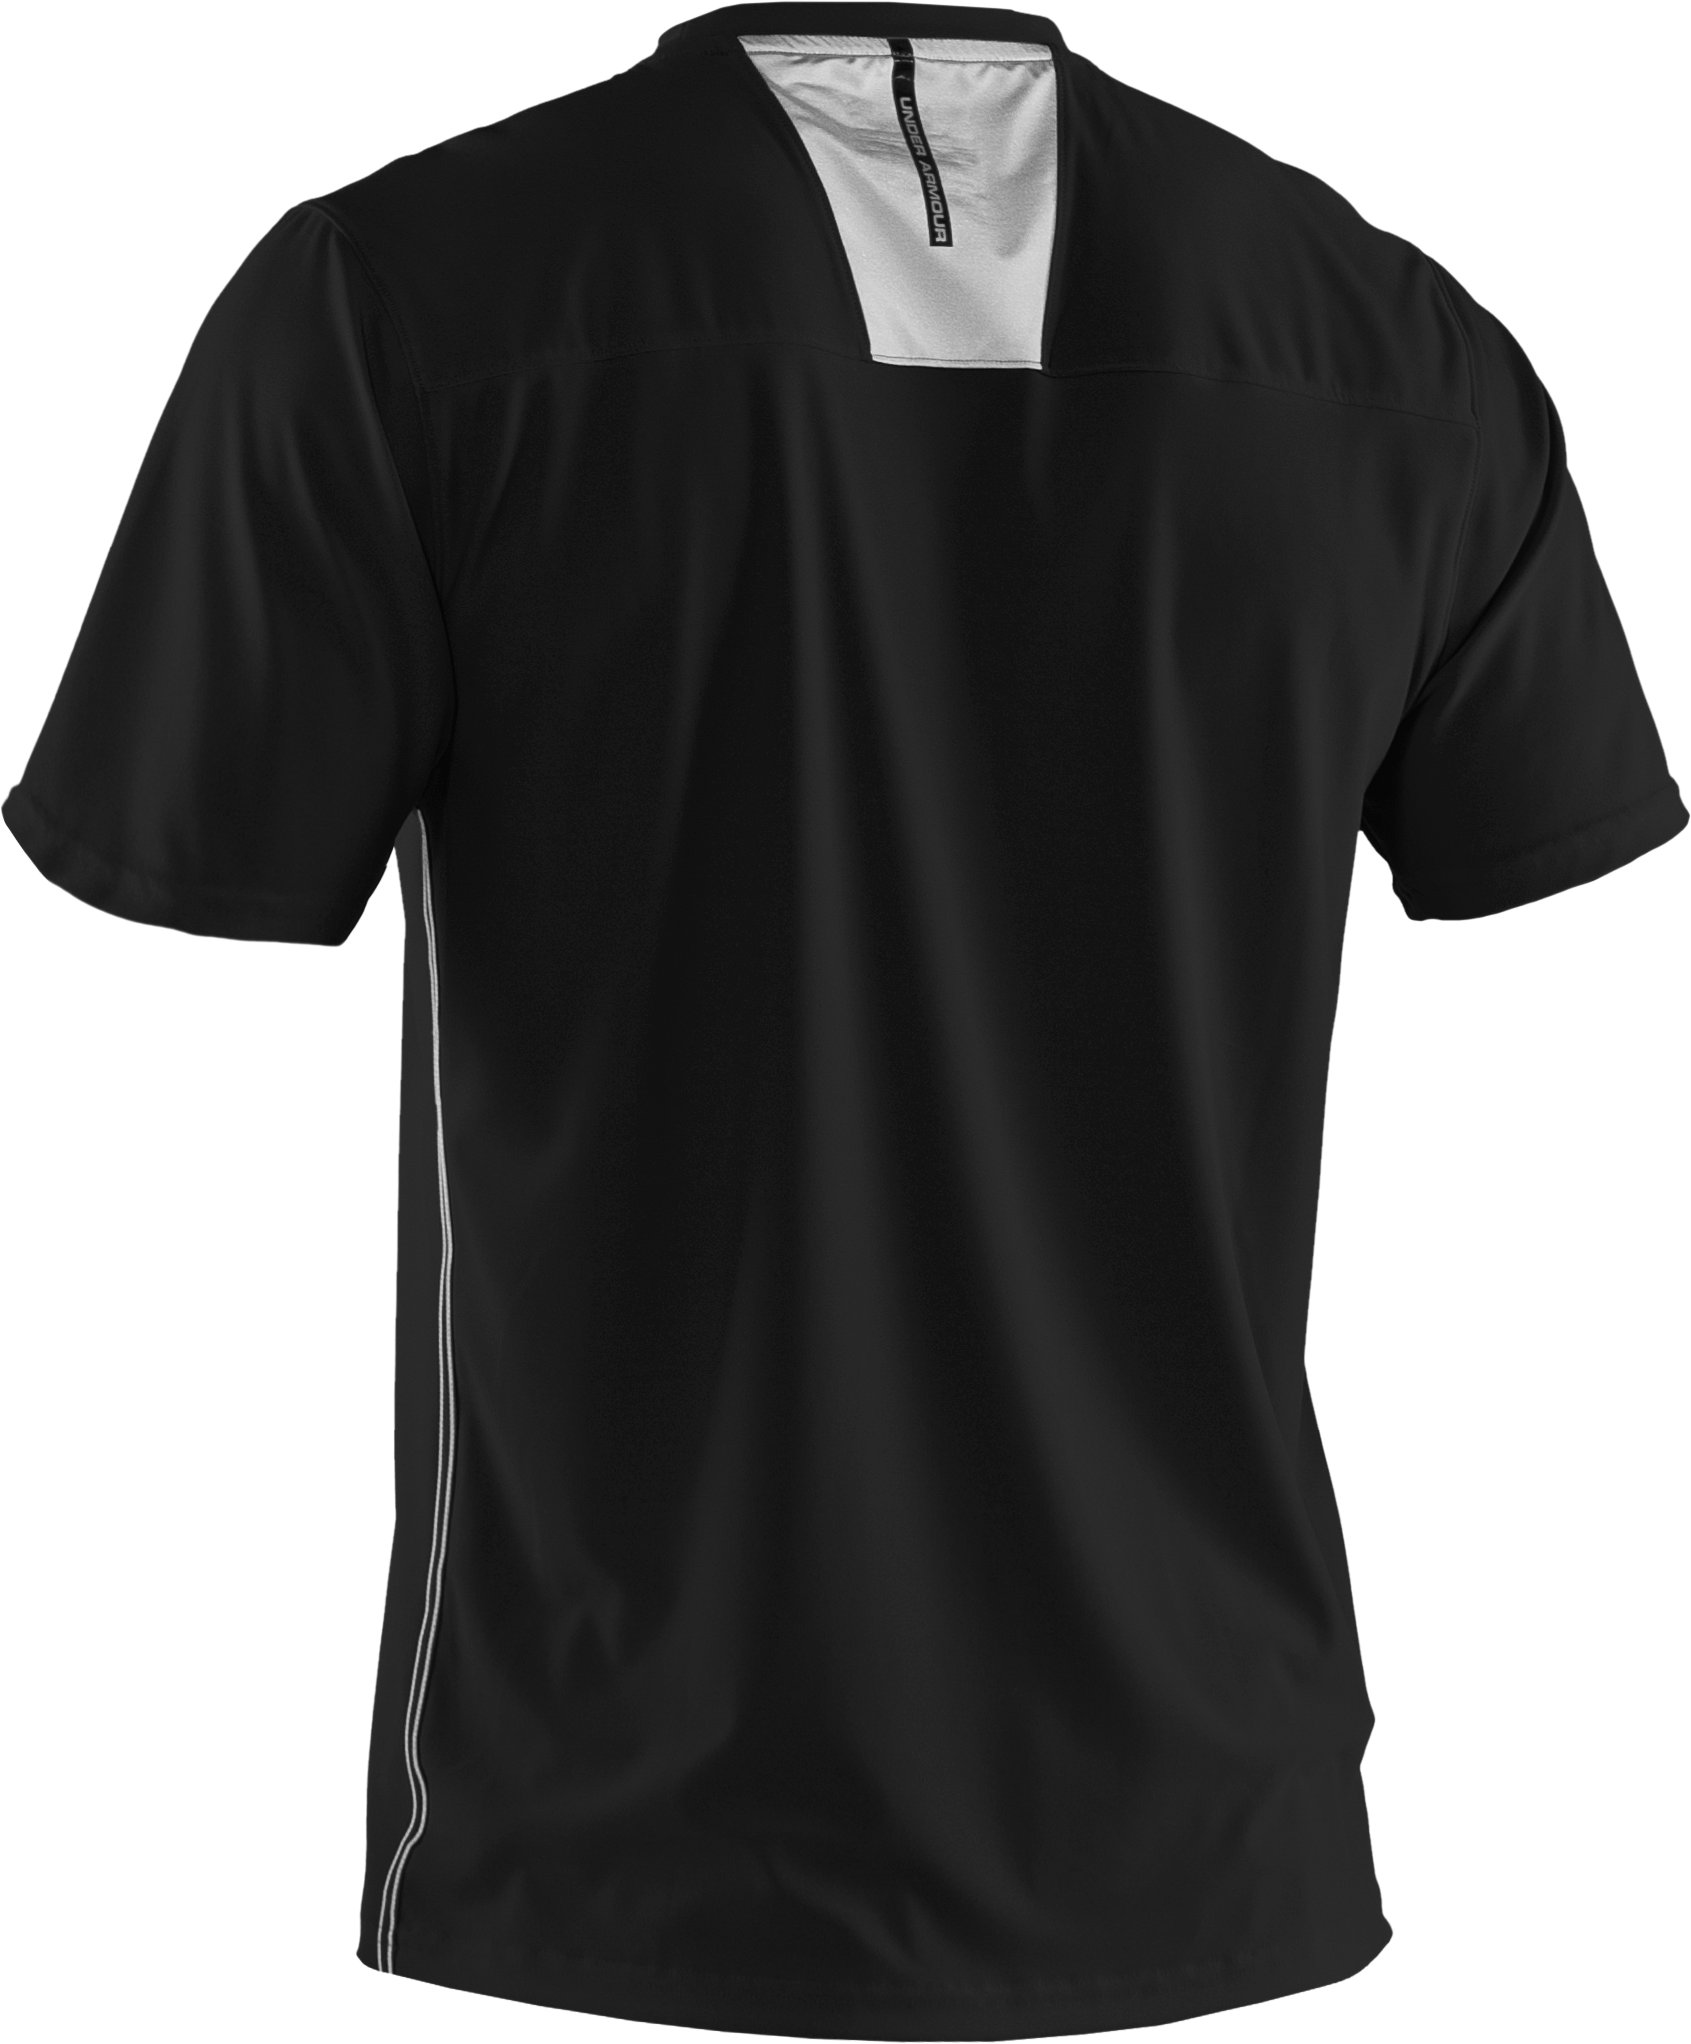 Men's coldblack® Short Sleeve T-Shirt, Black , undefined